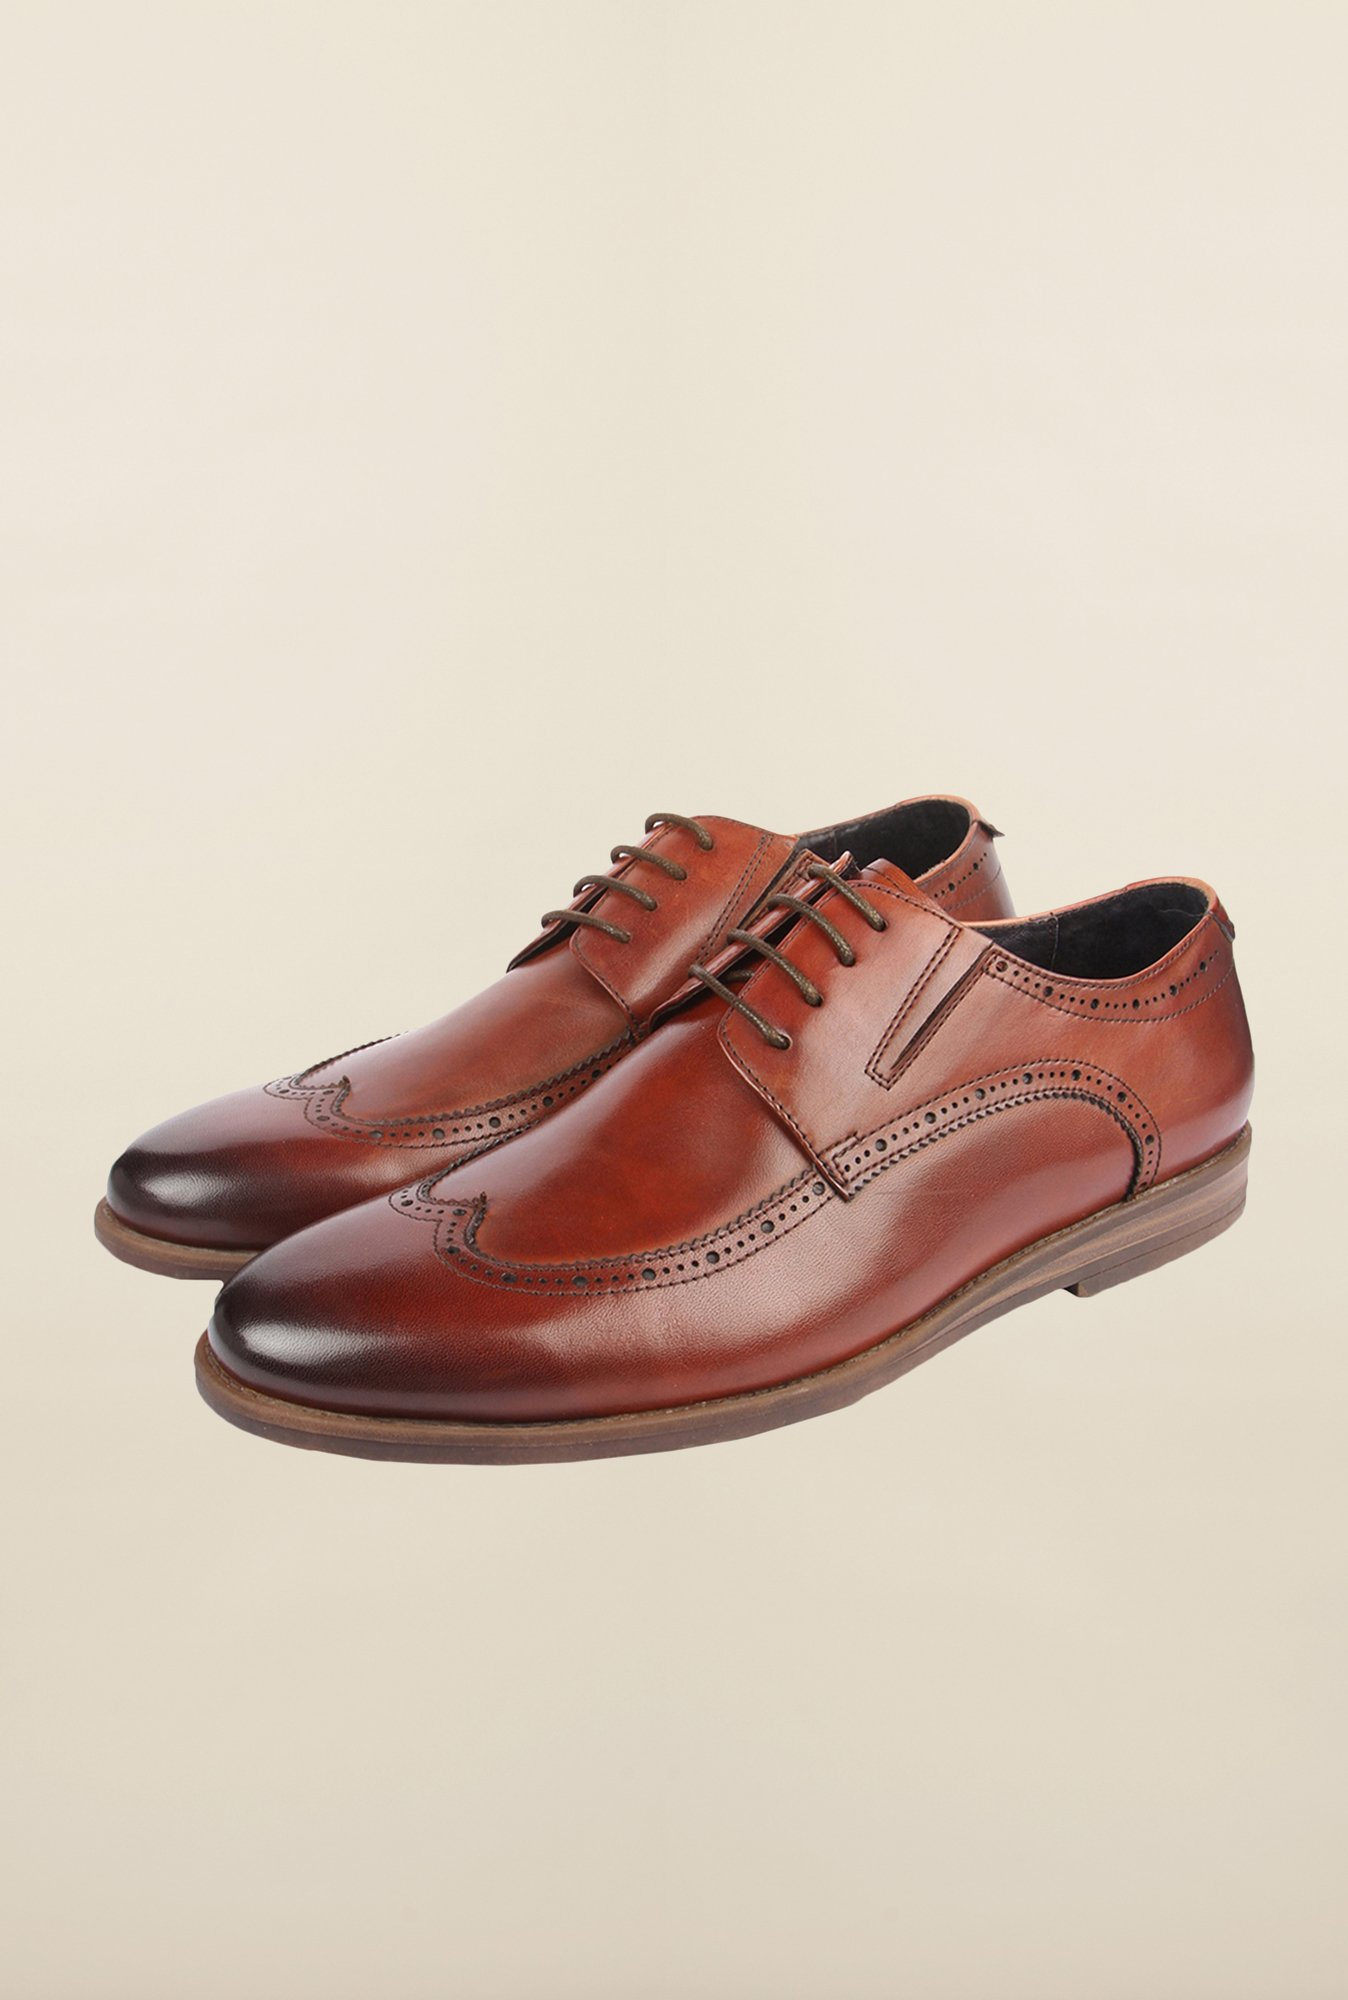 Cobblerz Brown Leather Brogue Shoes